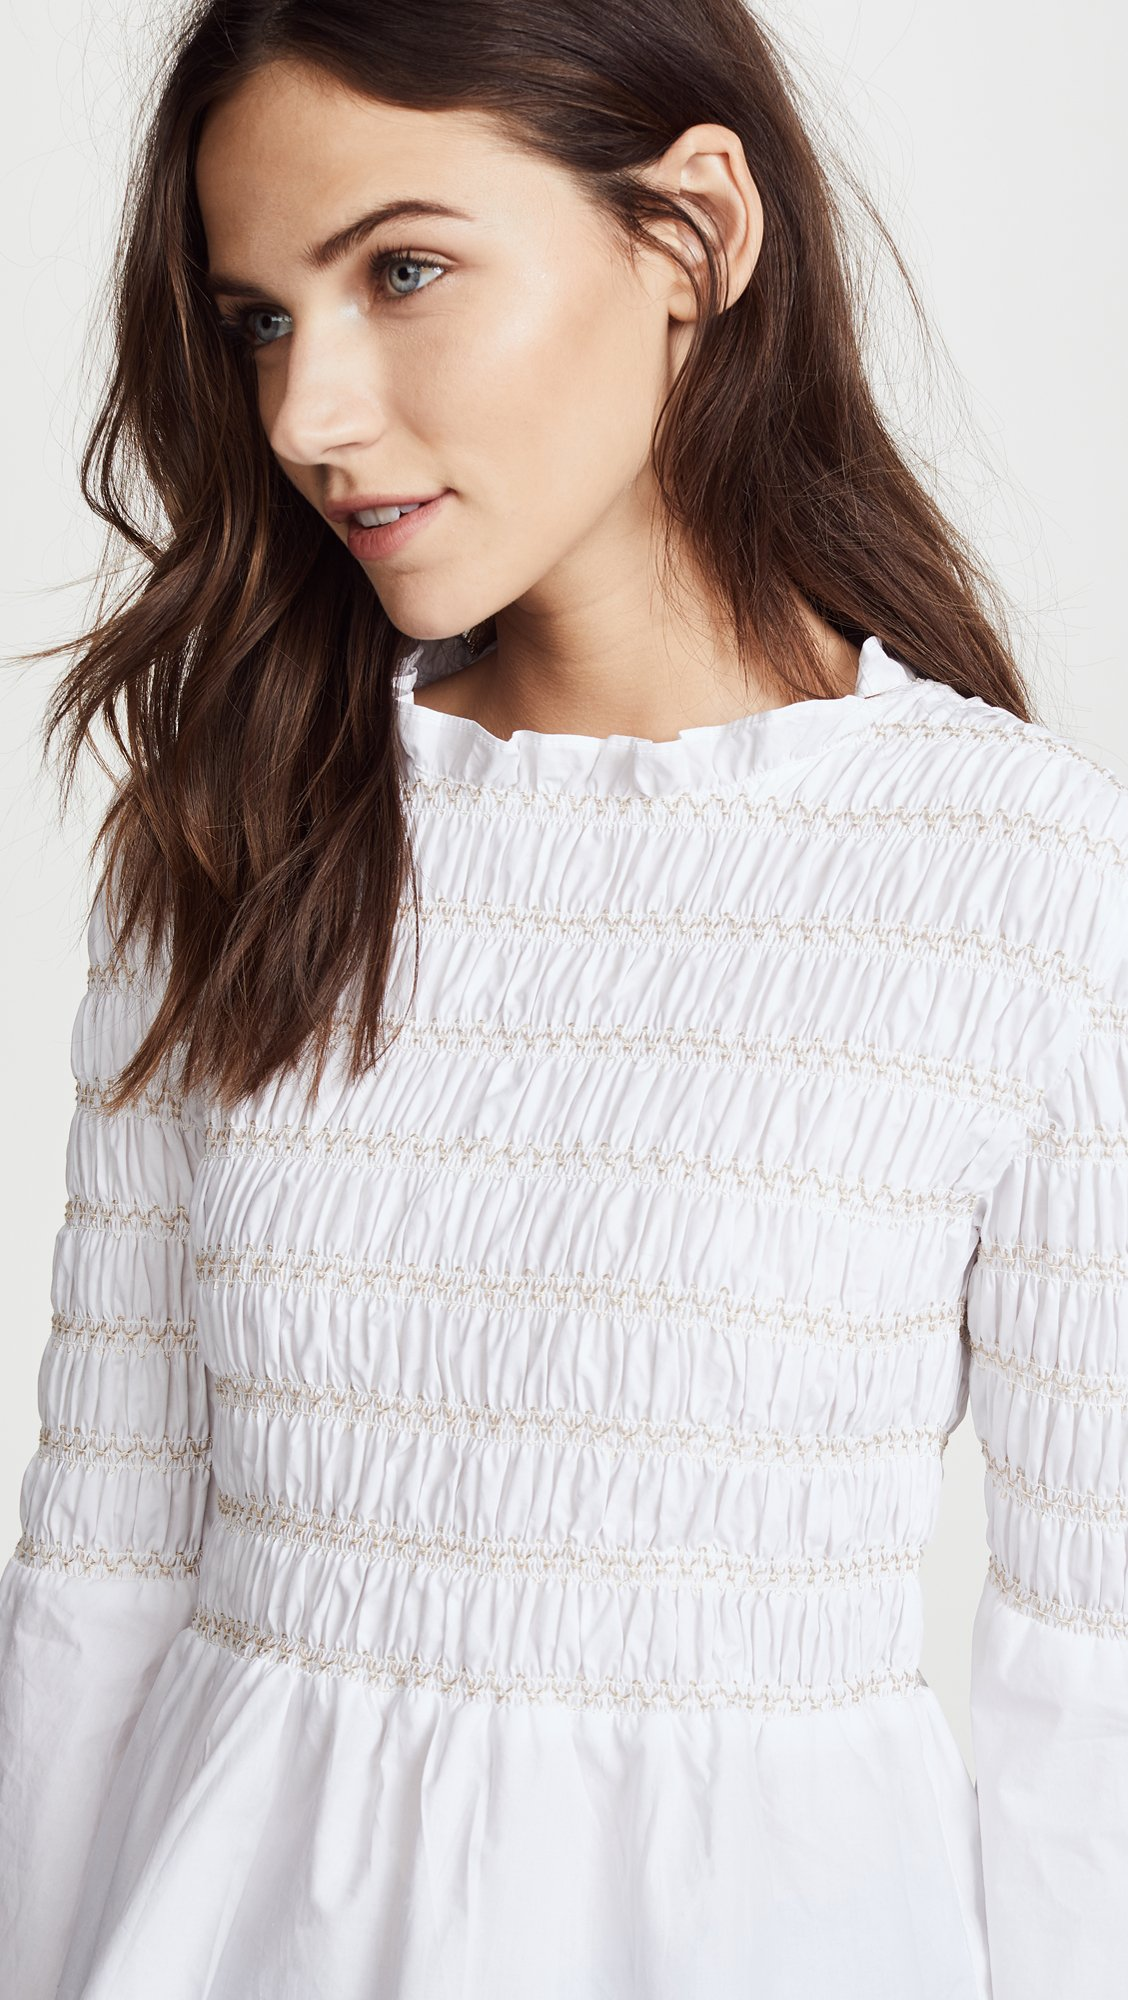 endless rose Women's Smocked Poplin Top, Off White, Small by endless rose (Image #6)